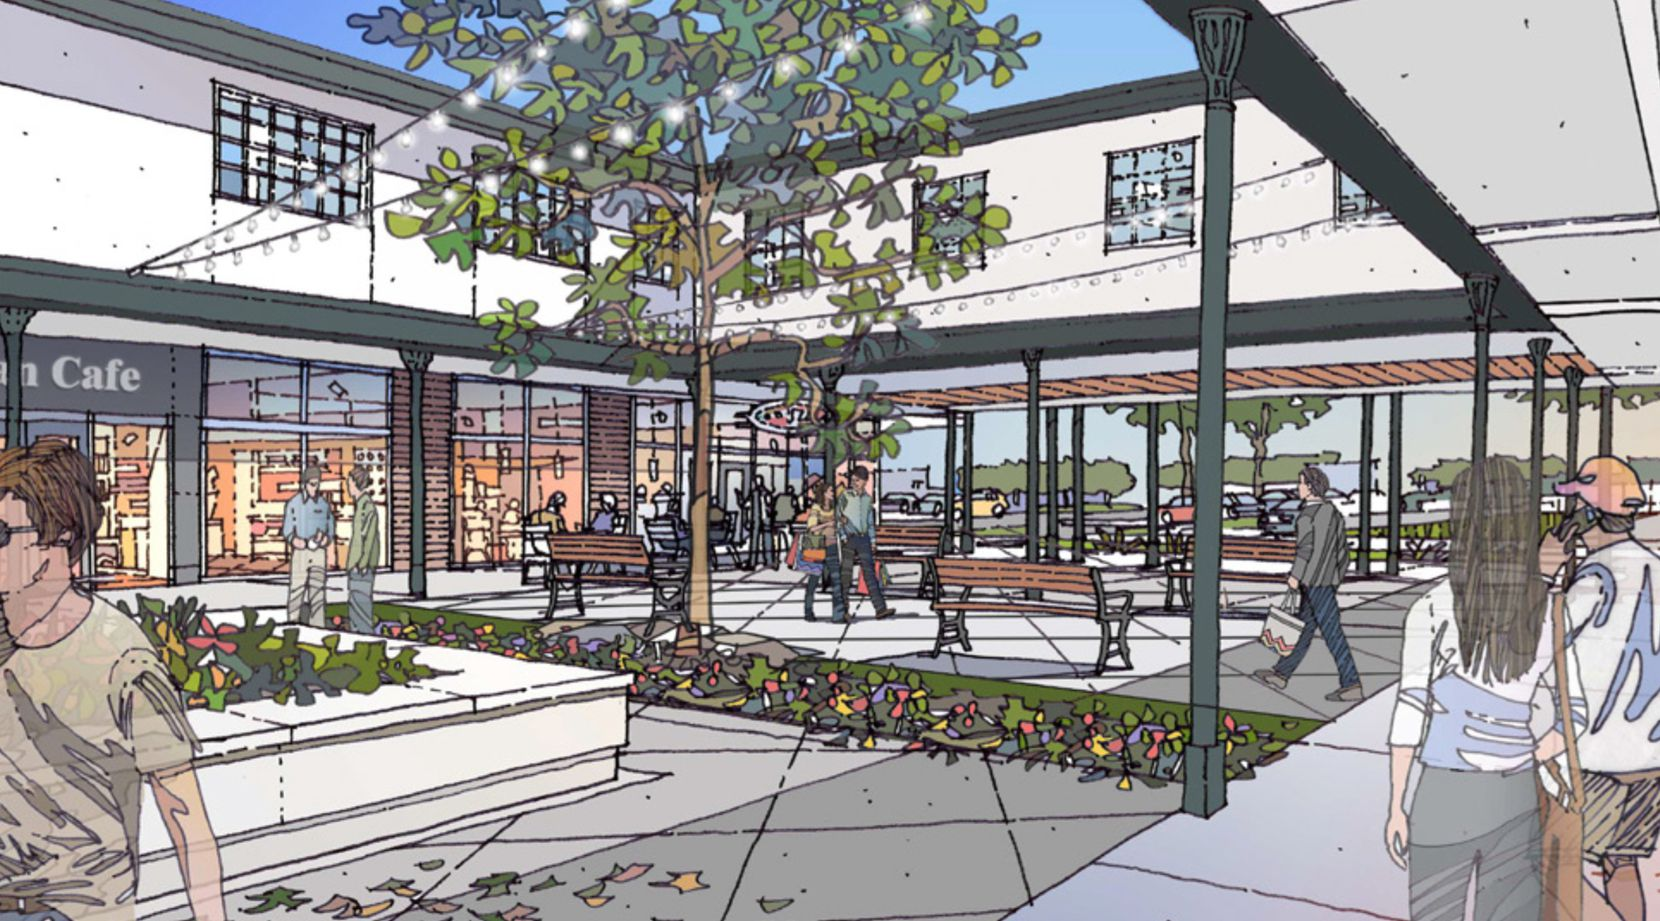 Casa View's central retail courtyard will get a redo with new landscaping and paving.